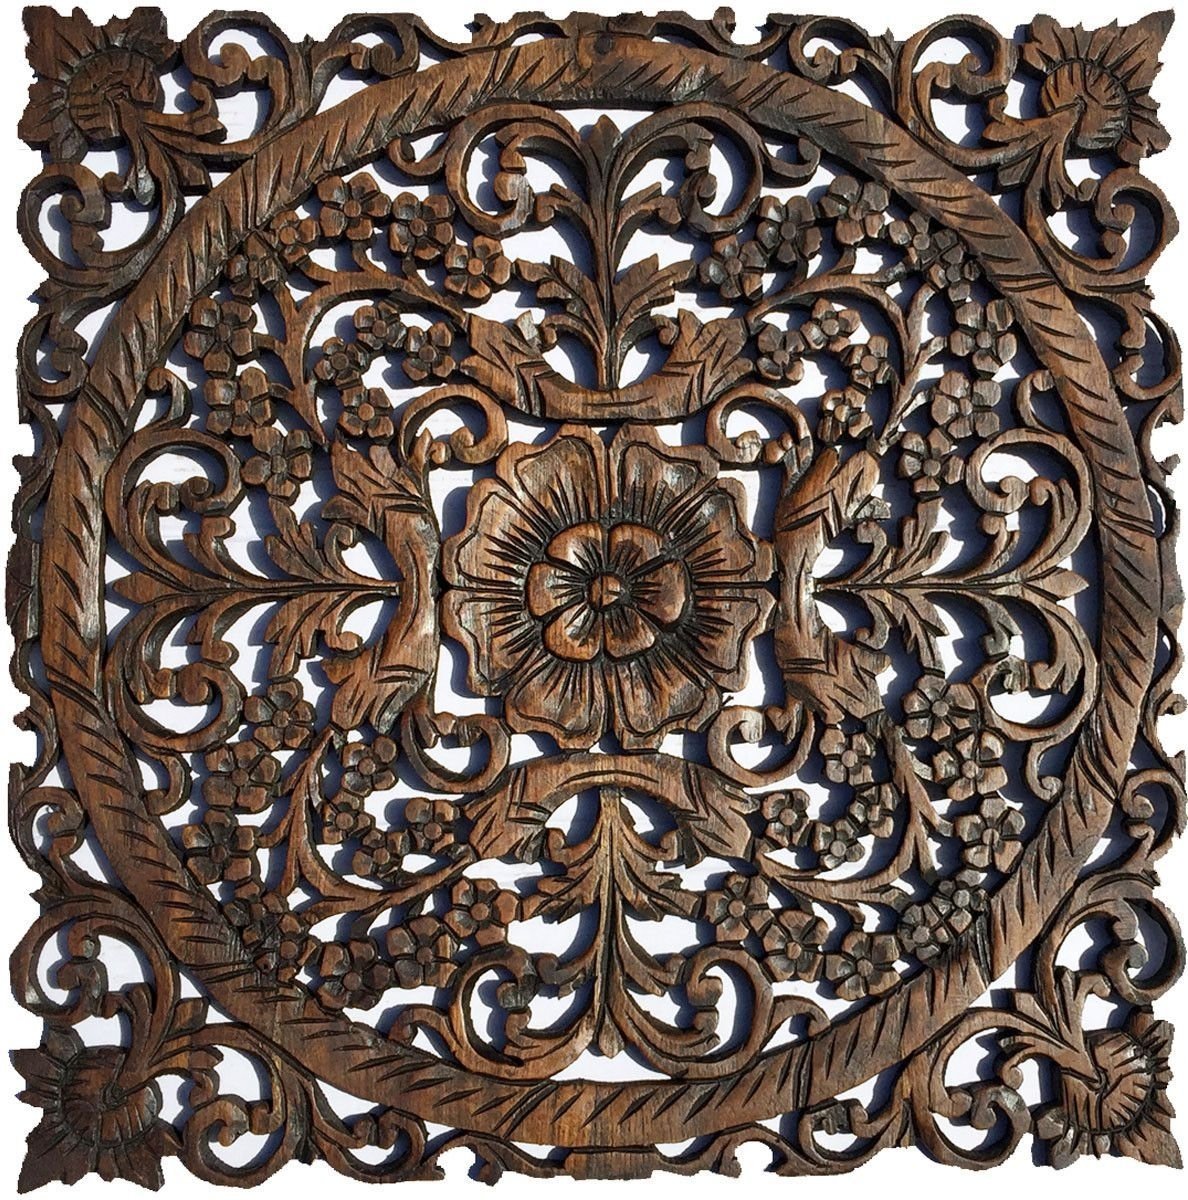 Oriental Carved Floral Wall Decor. Unique Asian Wood Wall Art (View 12 of 20)